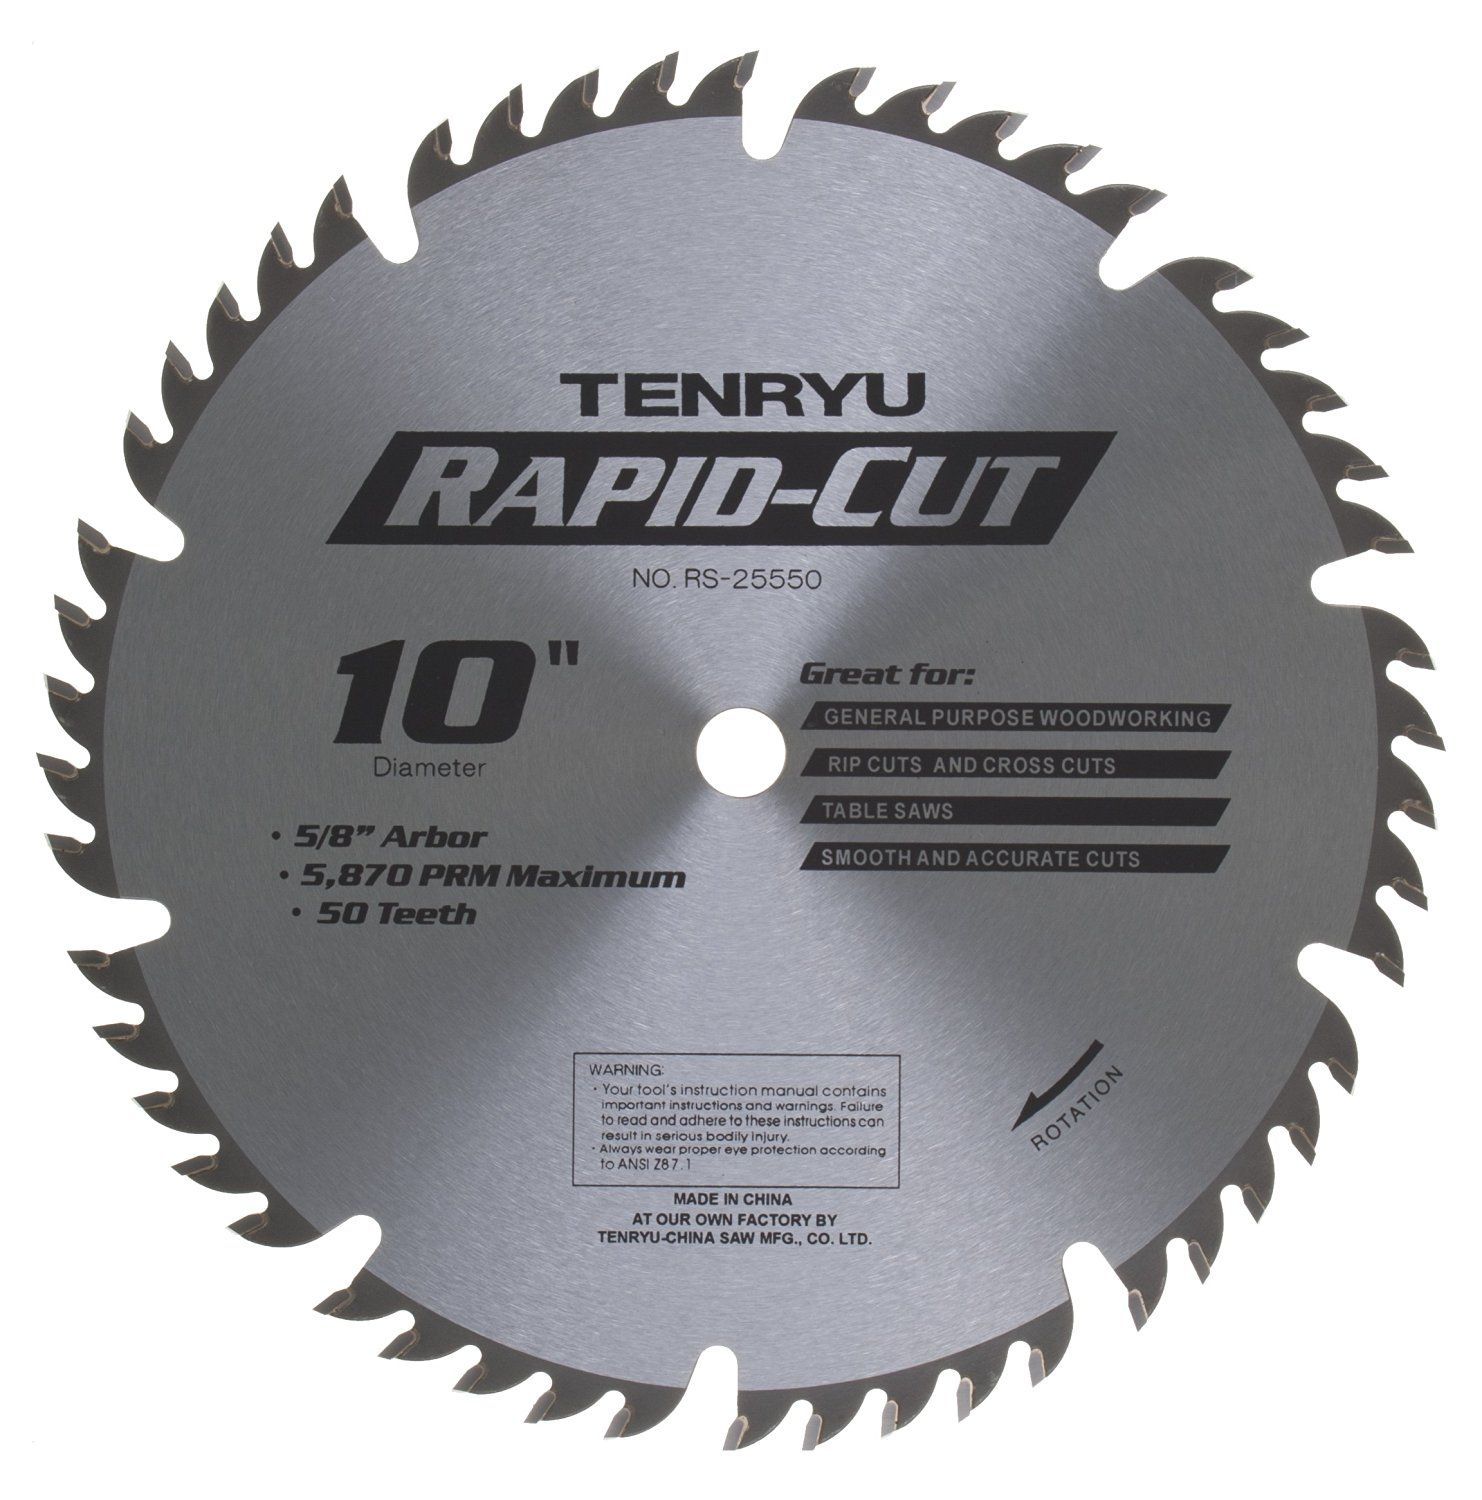 Tenryu Rs 25550 10 50 Tooth 5 8 Arbor All Purpose Wood Blade Click Image For More Details Table Saw Blades Circular Saw Blades Saw Blade